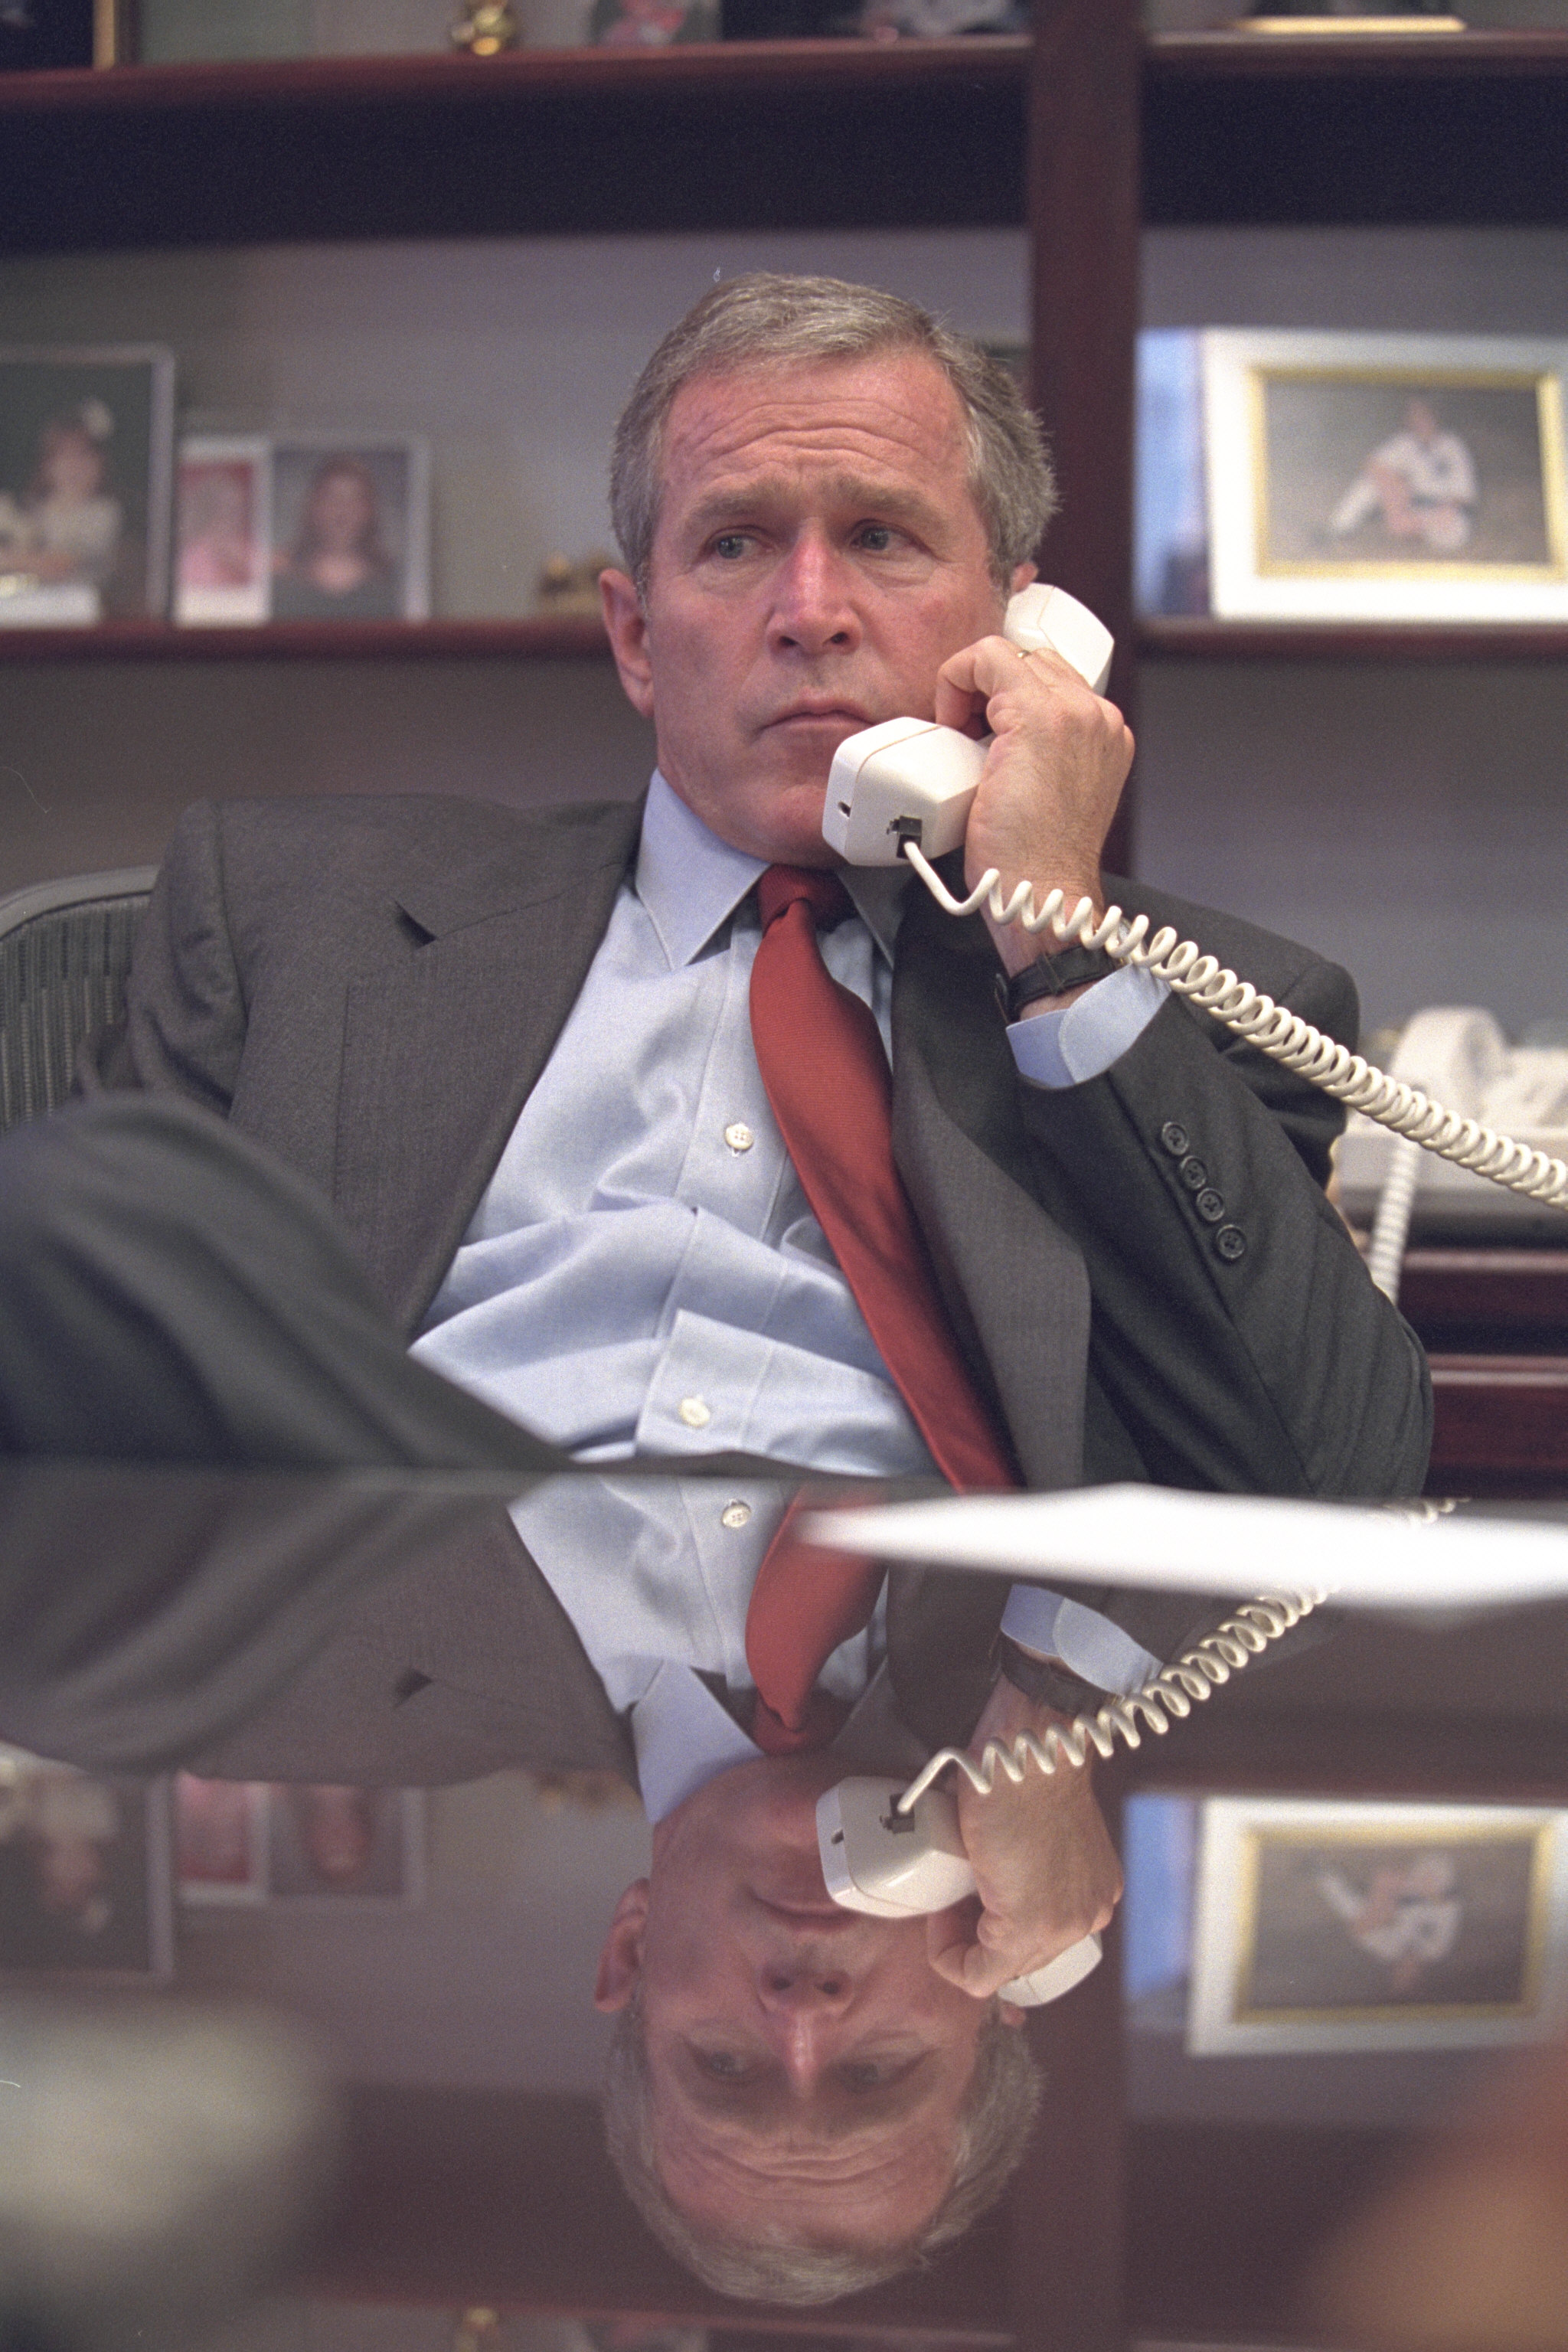 Do you think one day George Bush may be charged for crimes against humanity?